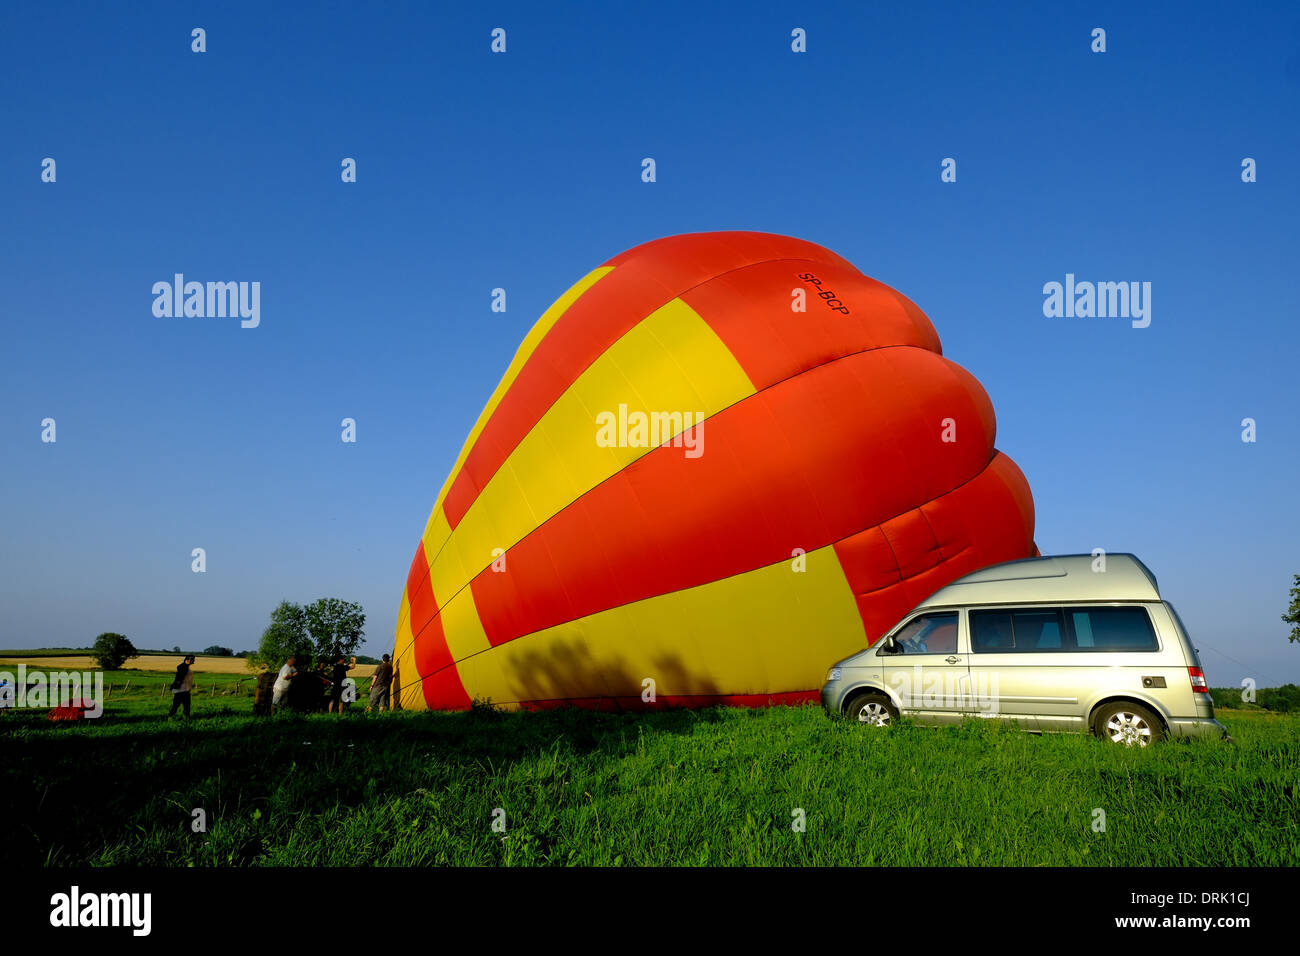 VW Volkswagen California Camper with Polyroof type roof next to a hot air Balloon - Stock Image